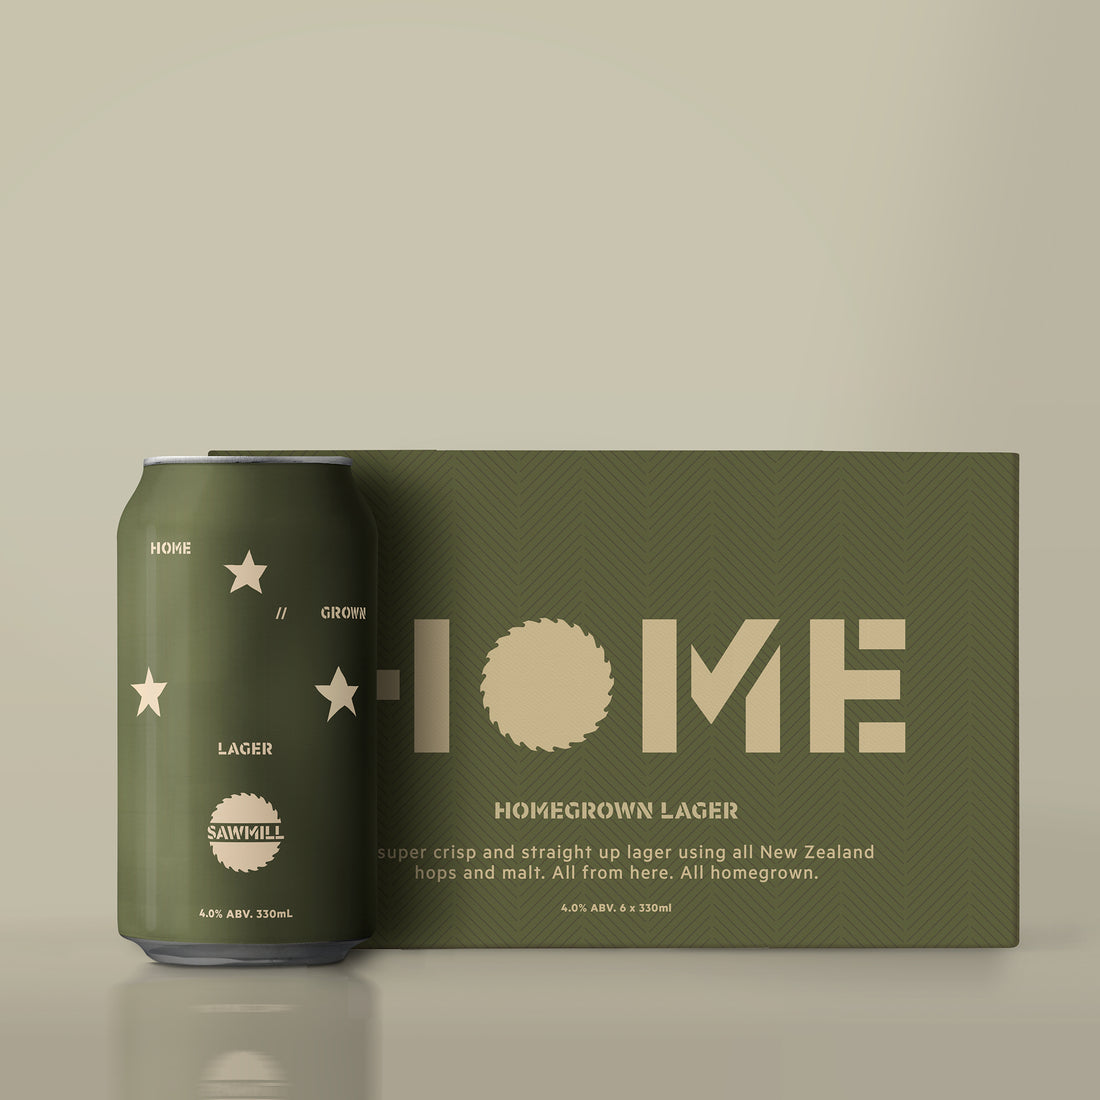 Homegrown Lager